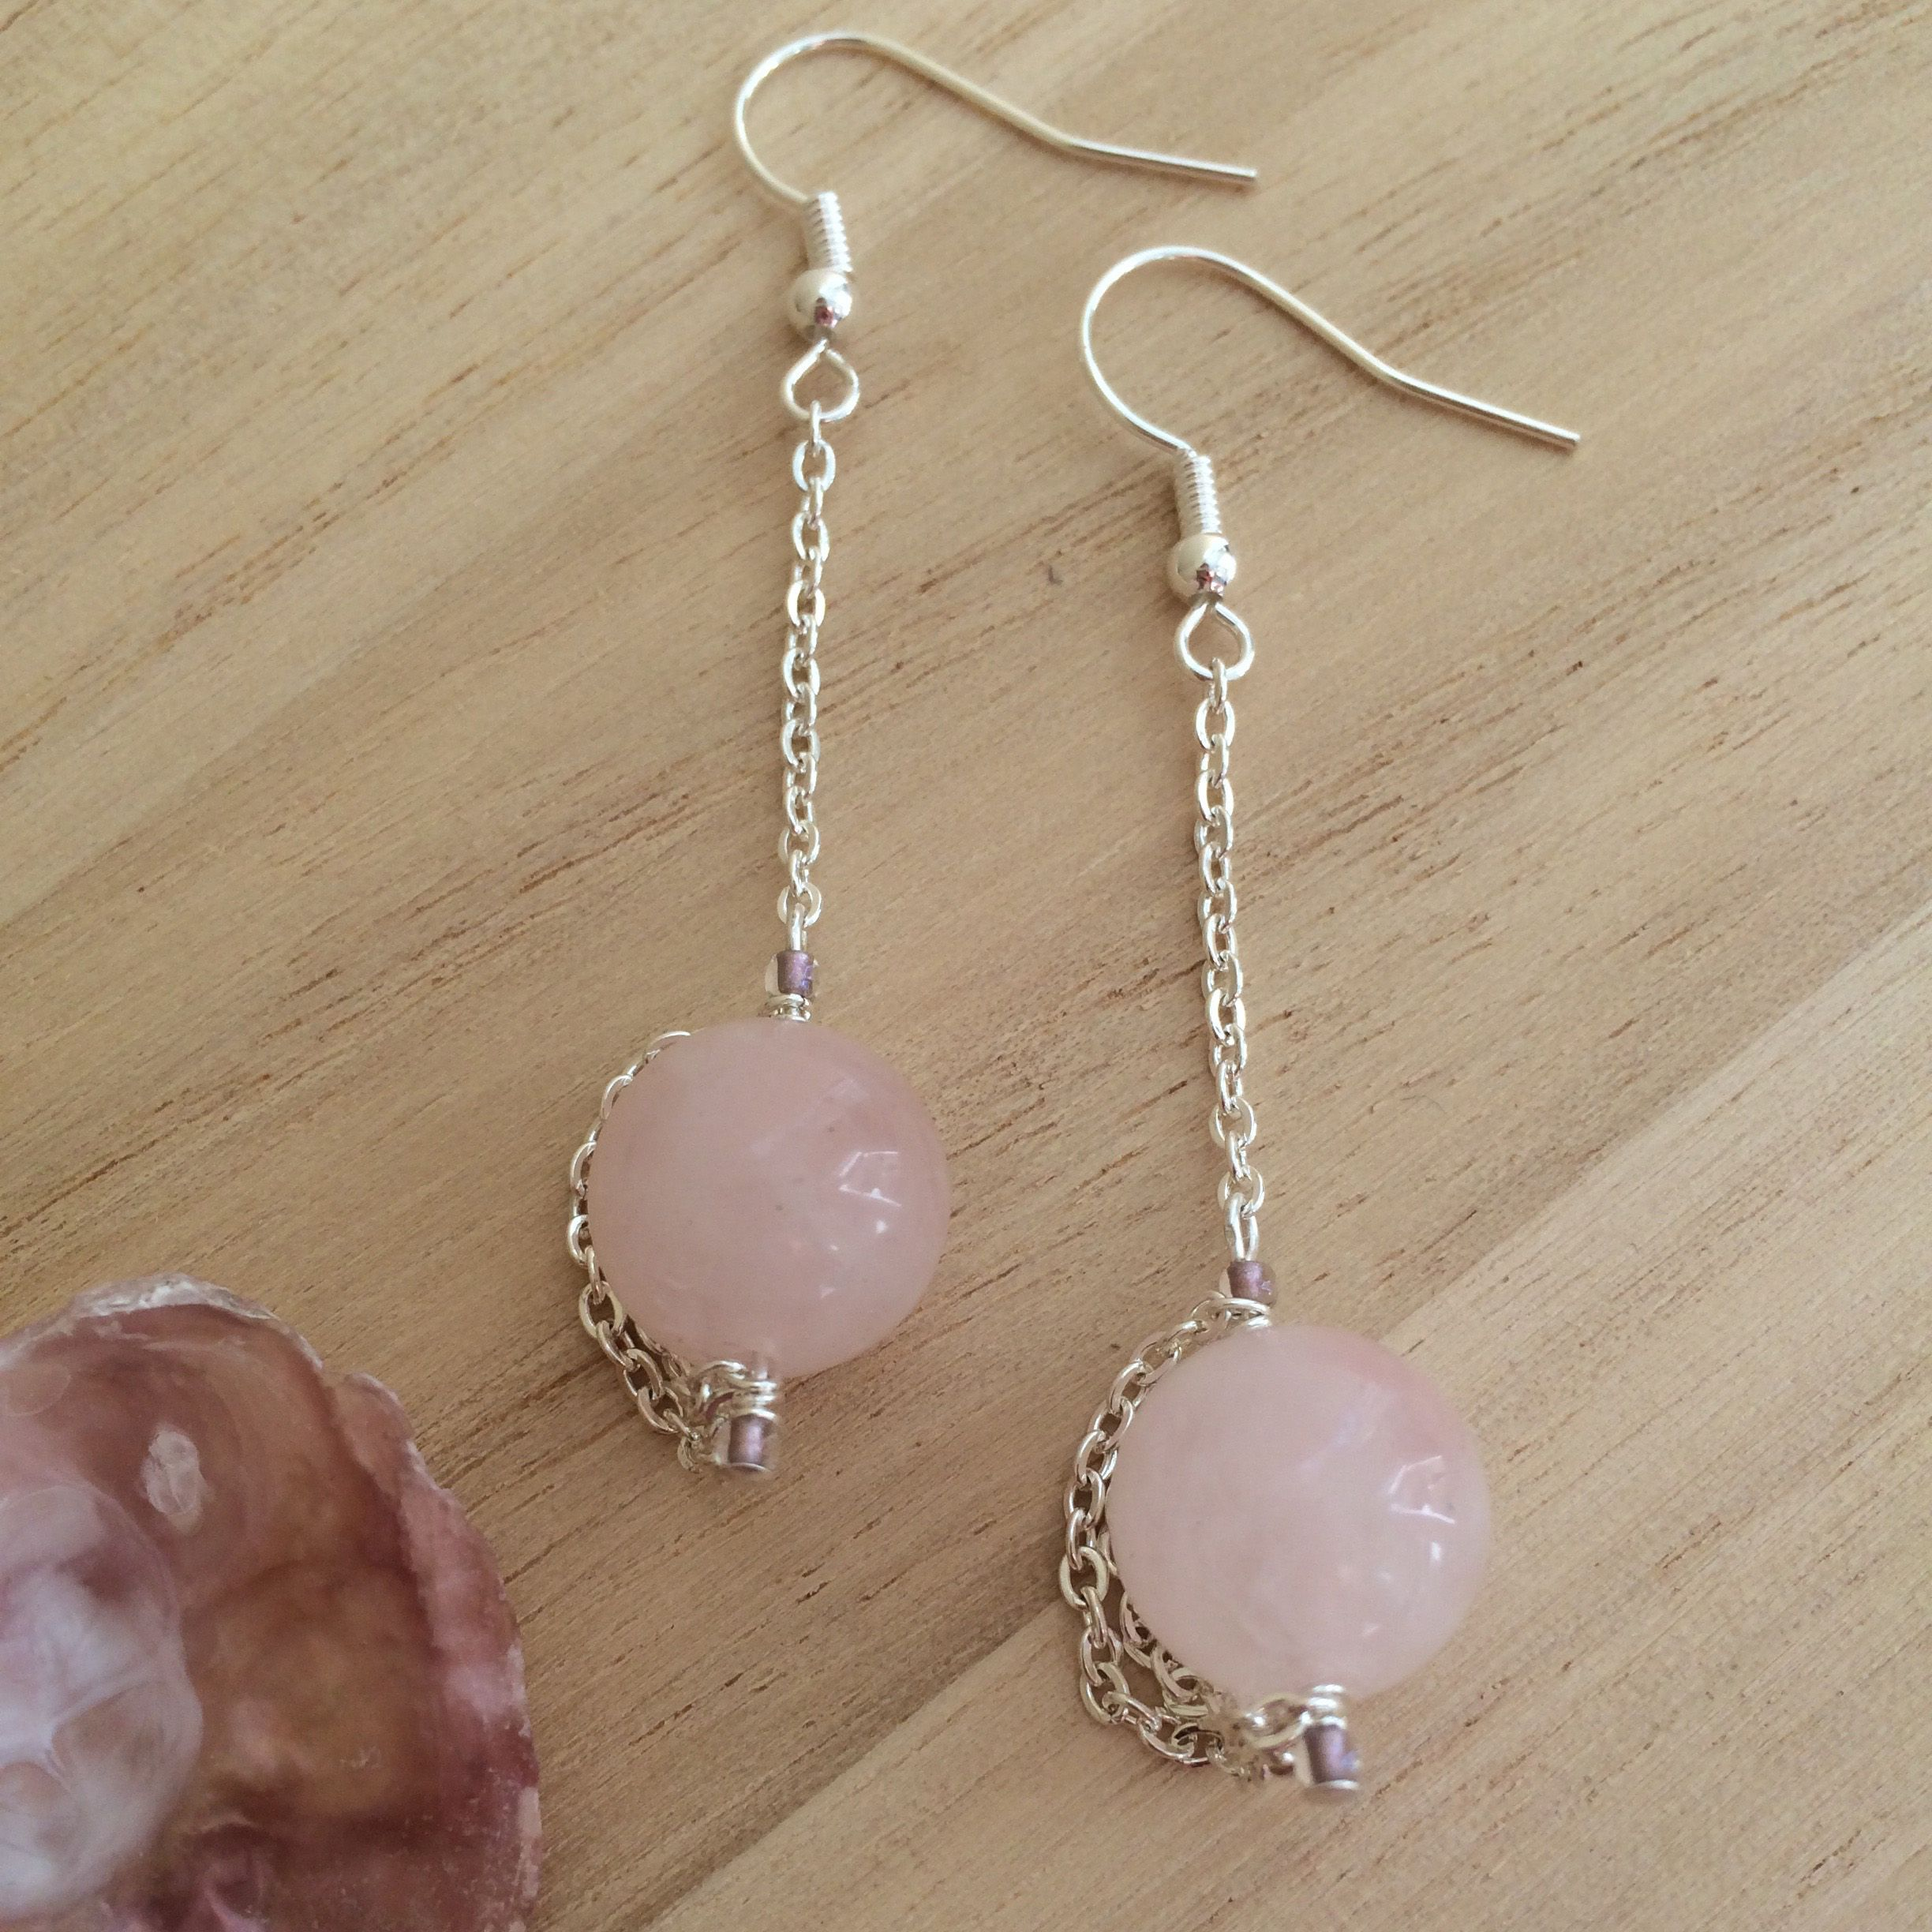 Rose Quartz Earrings With Chain